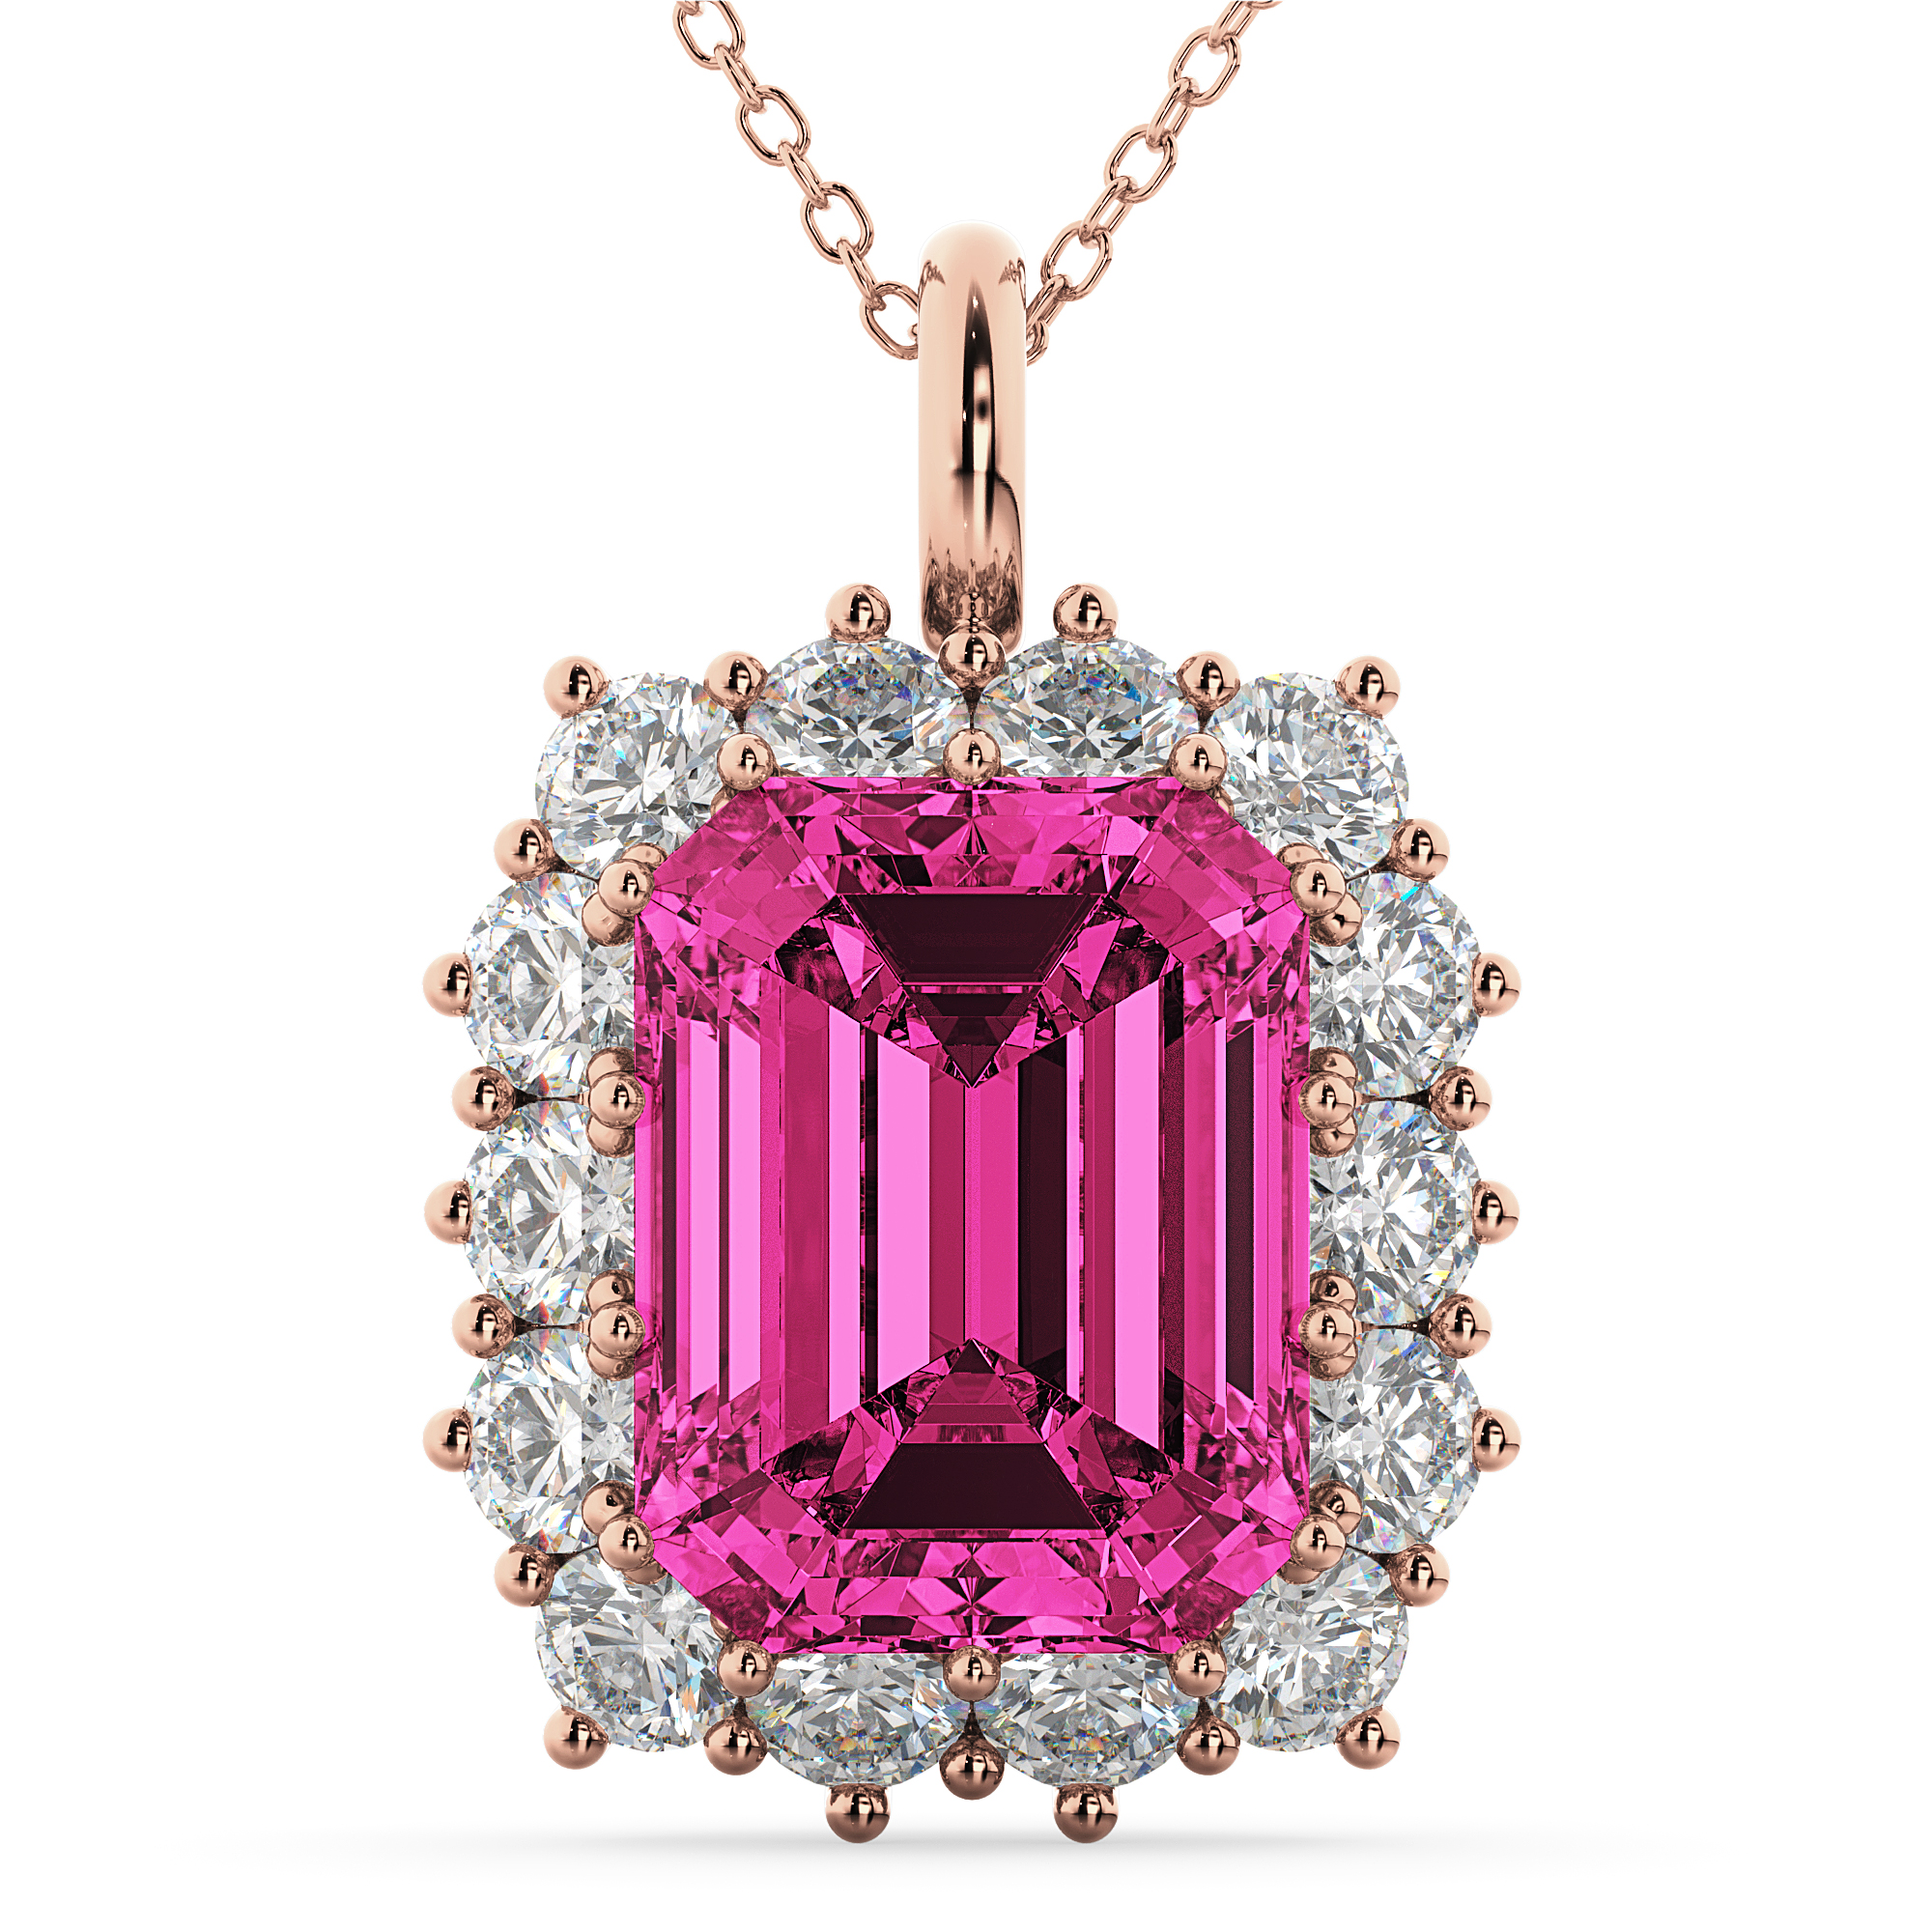 statement pin luxury pink tourmaline watermelon bib pendant gemstone necklace